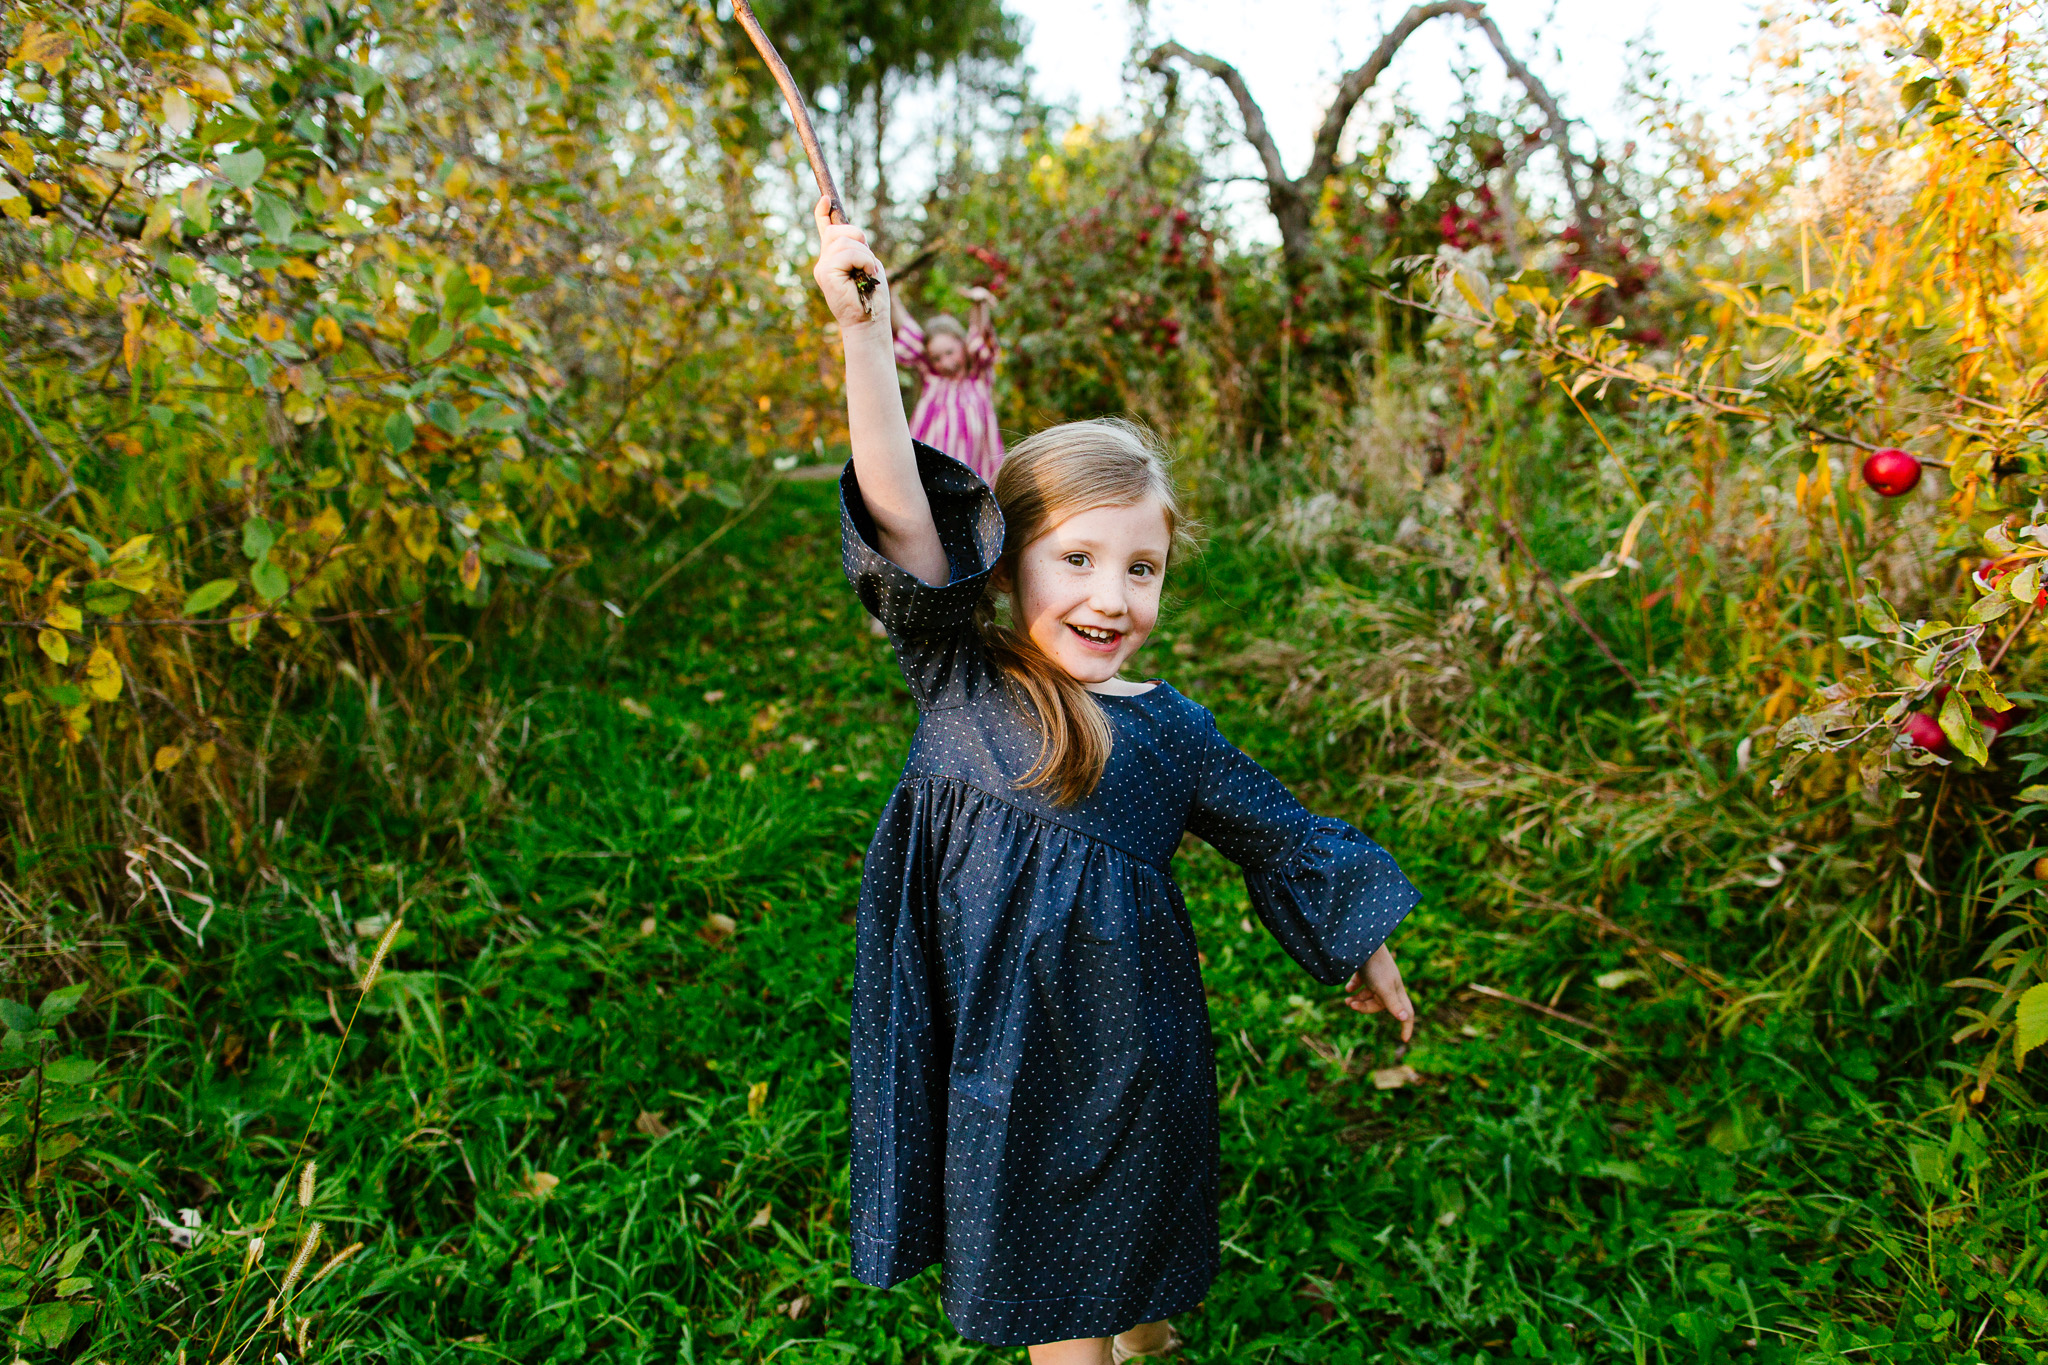 Bothell Orchard Family Photo Mini Sessions